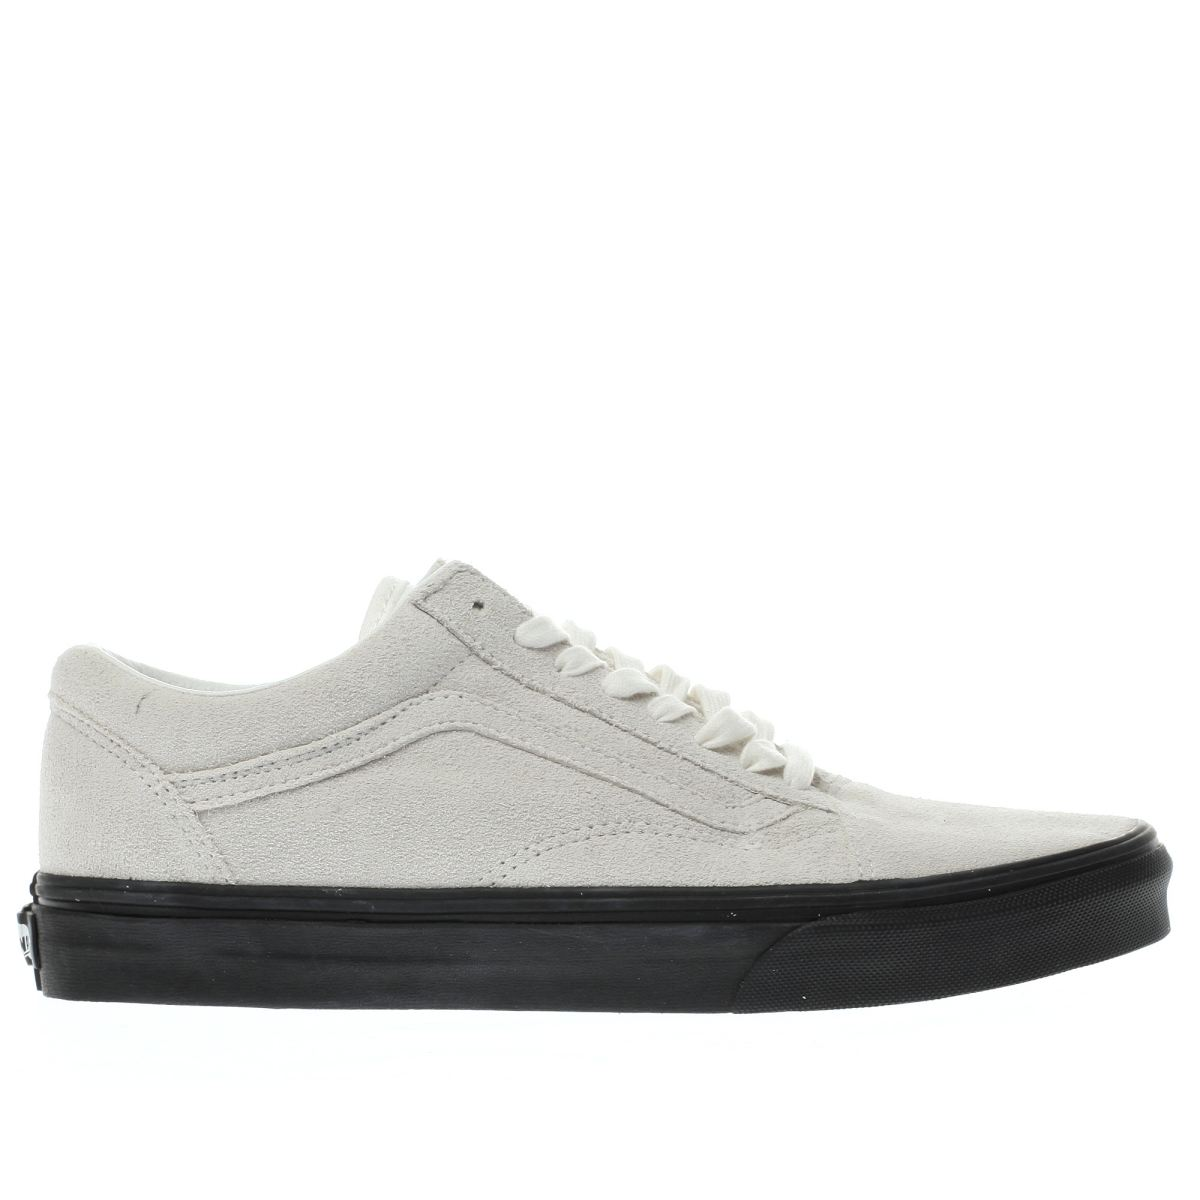 vans white & black old skool trainers